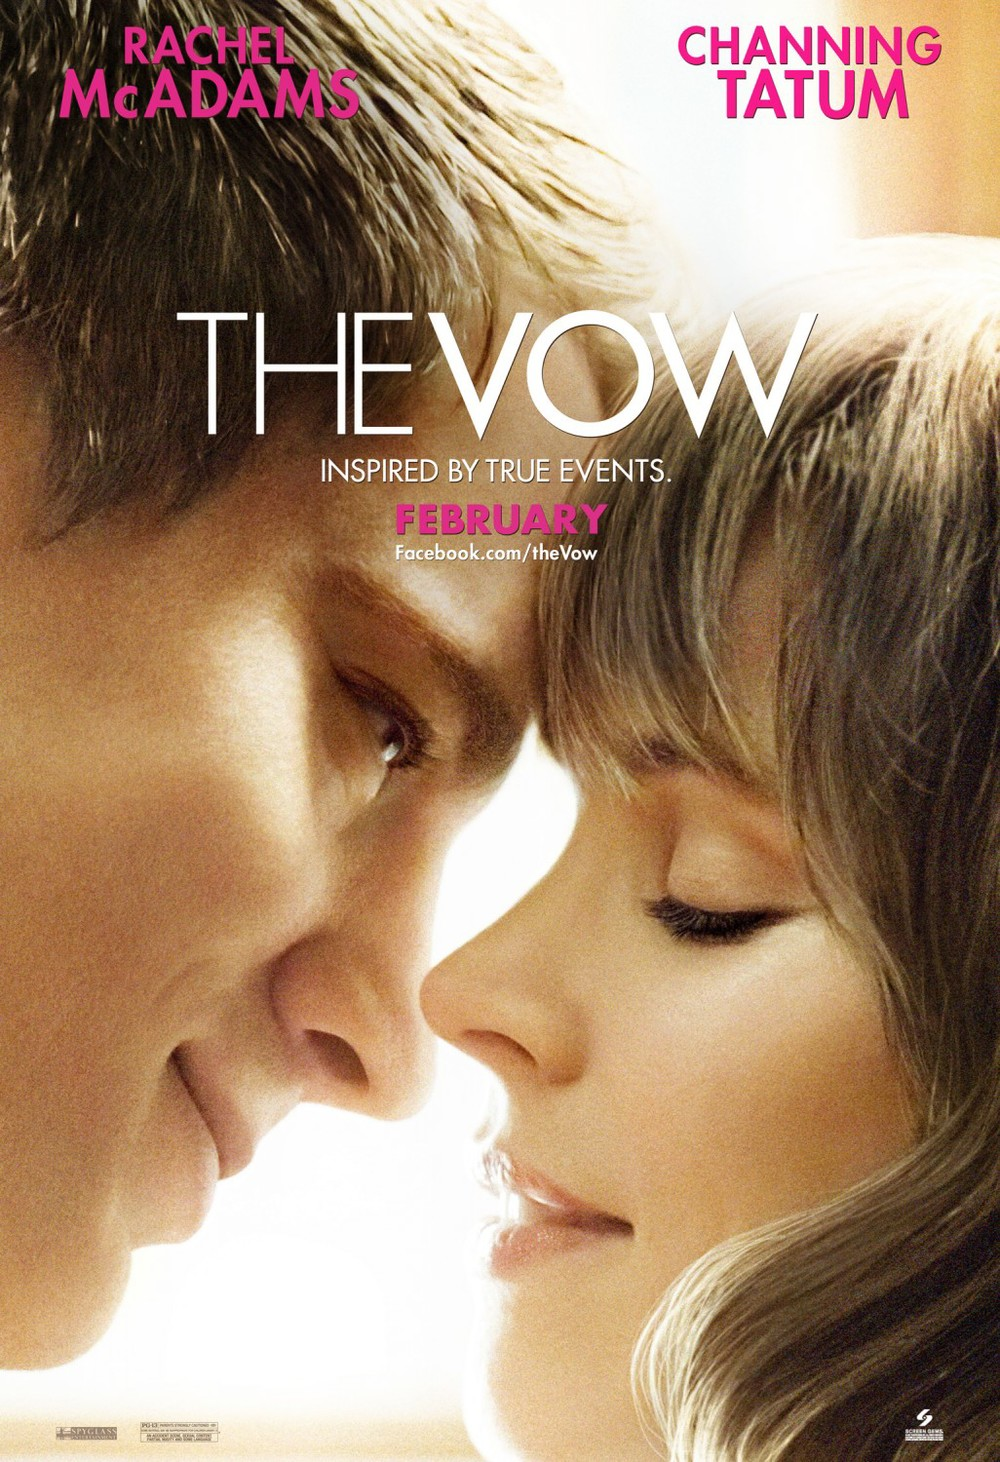 poster-The-Vow-2012-official-movie-trailer-and-release-date-with-short-review.jpg